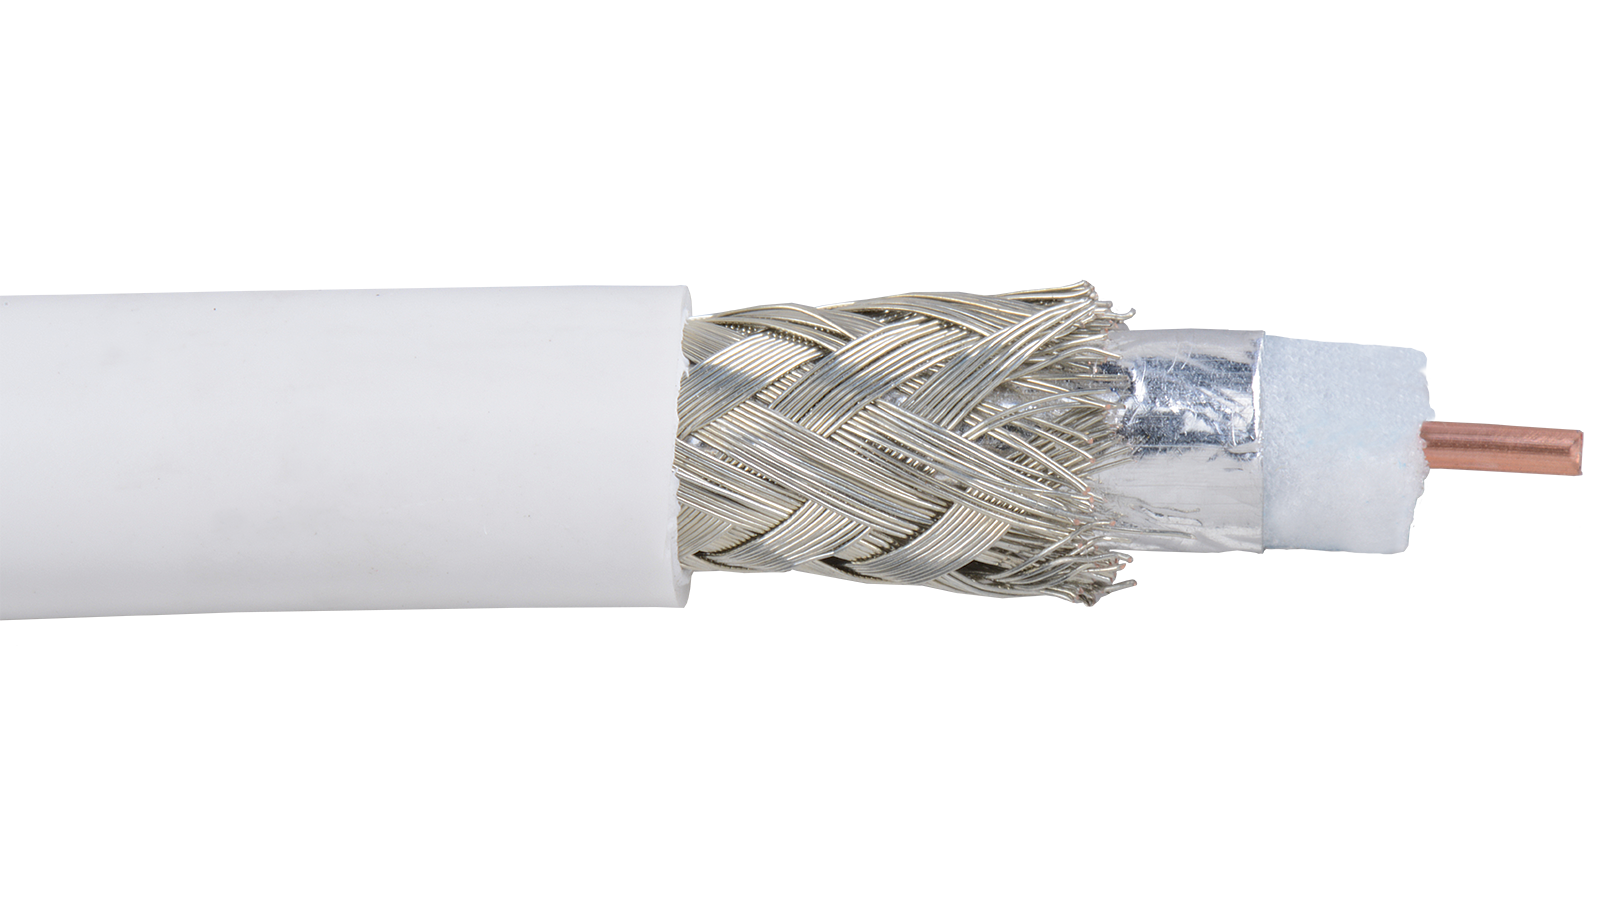 18-CMR-SD-BLK - Serial Digital RG6 dual Shield 4.5 GHz Coaxial Cable